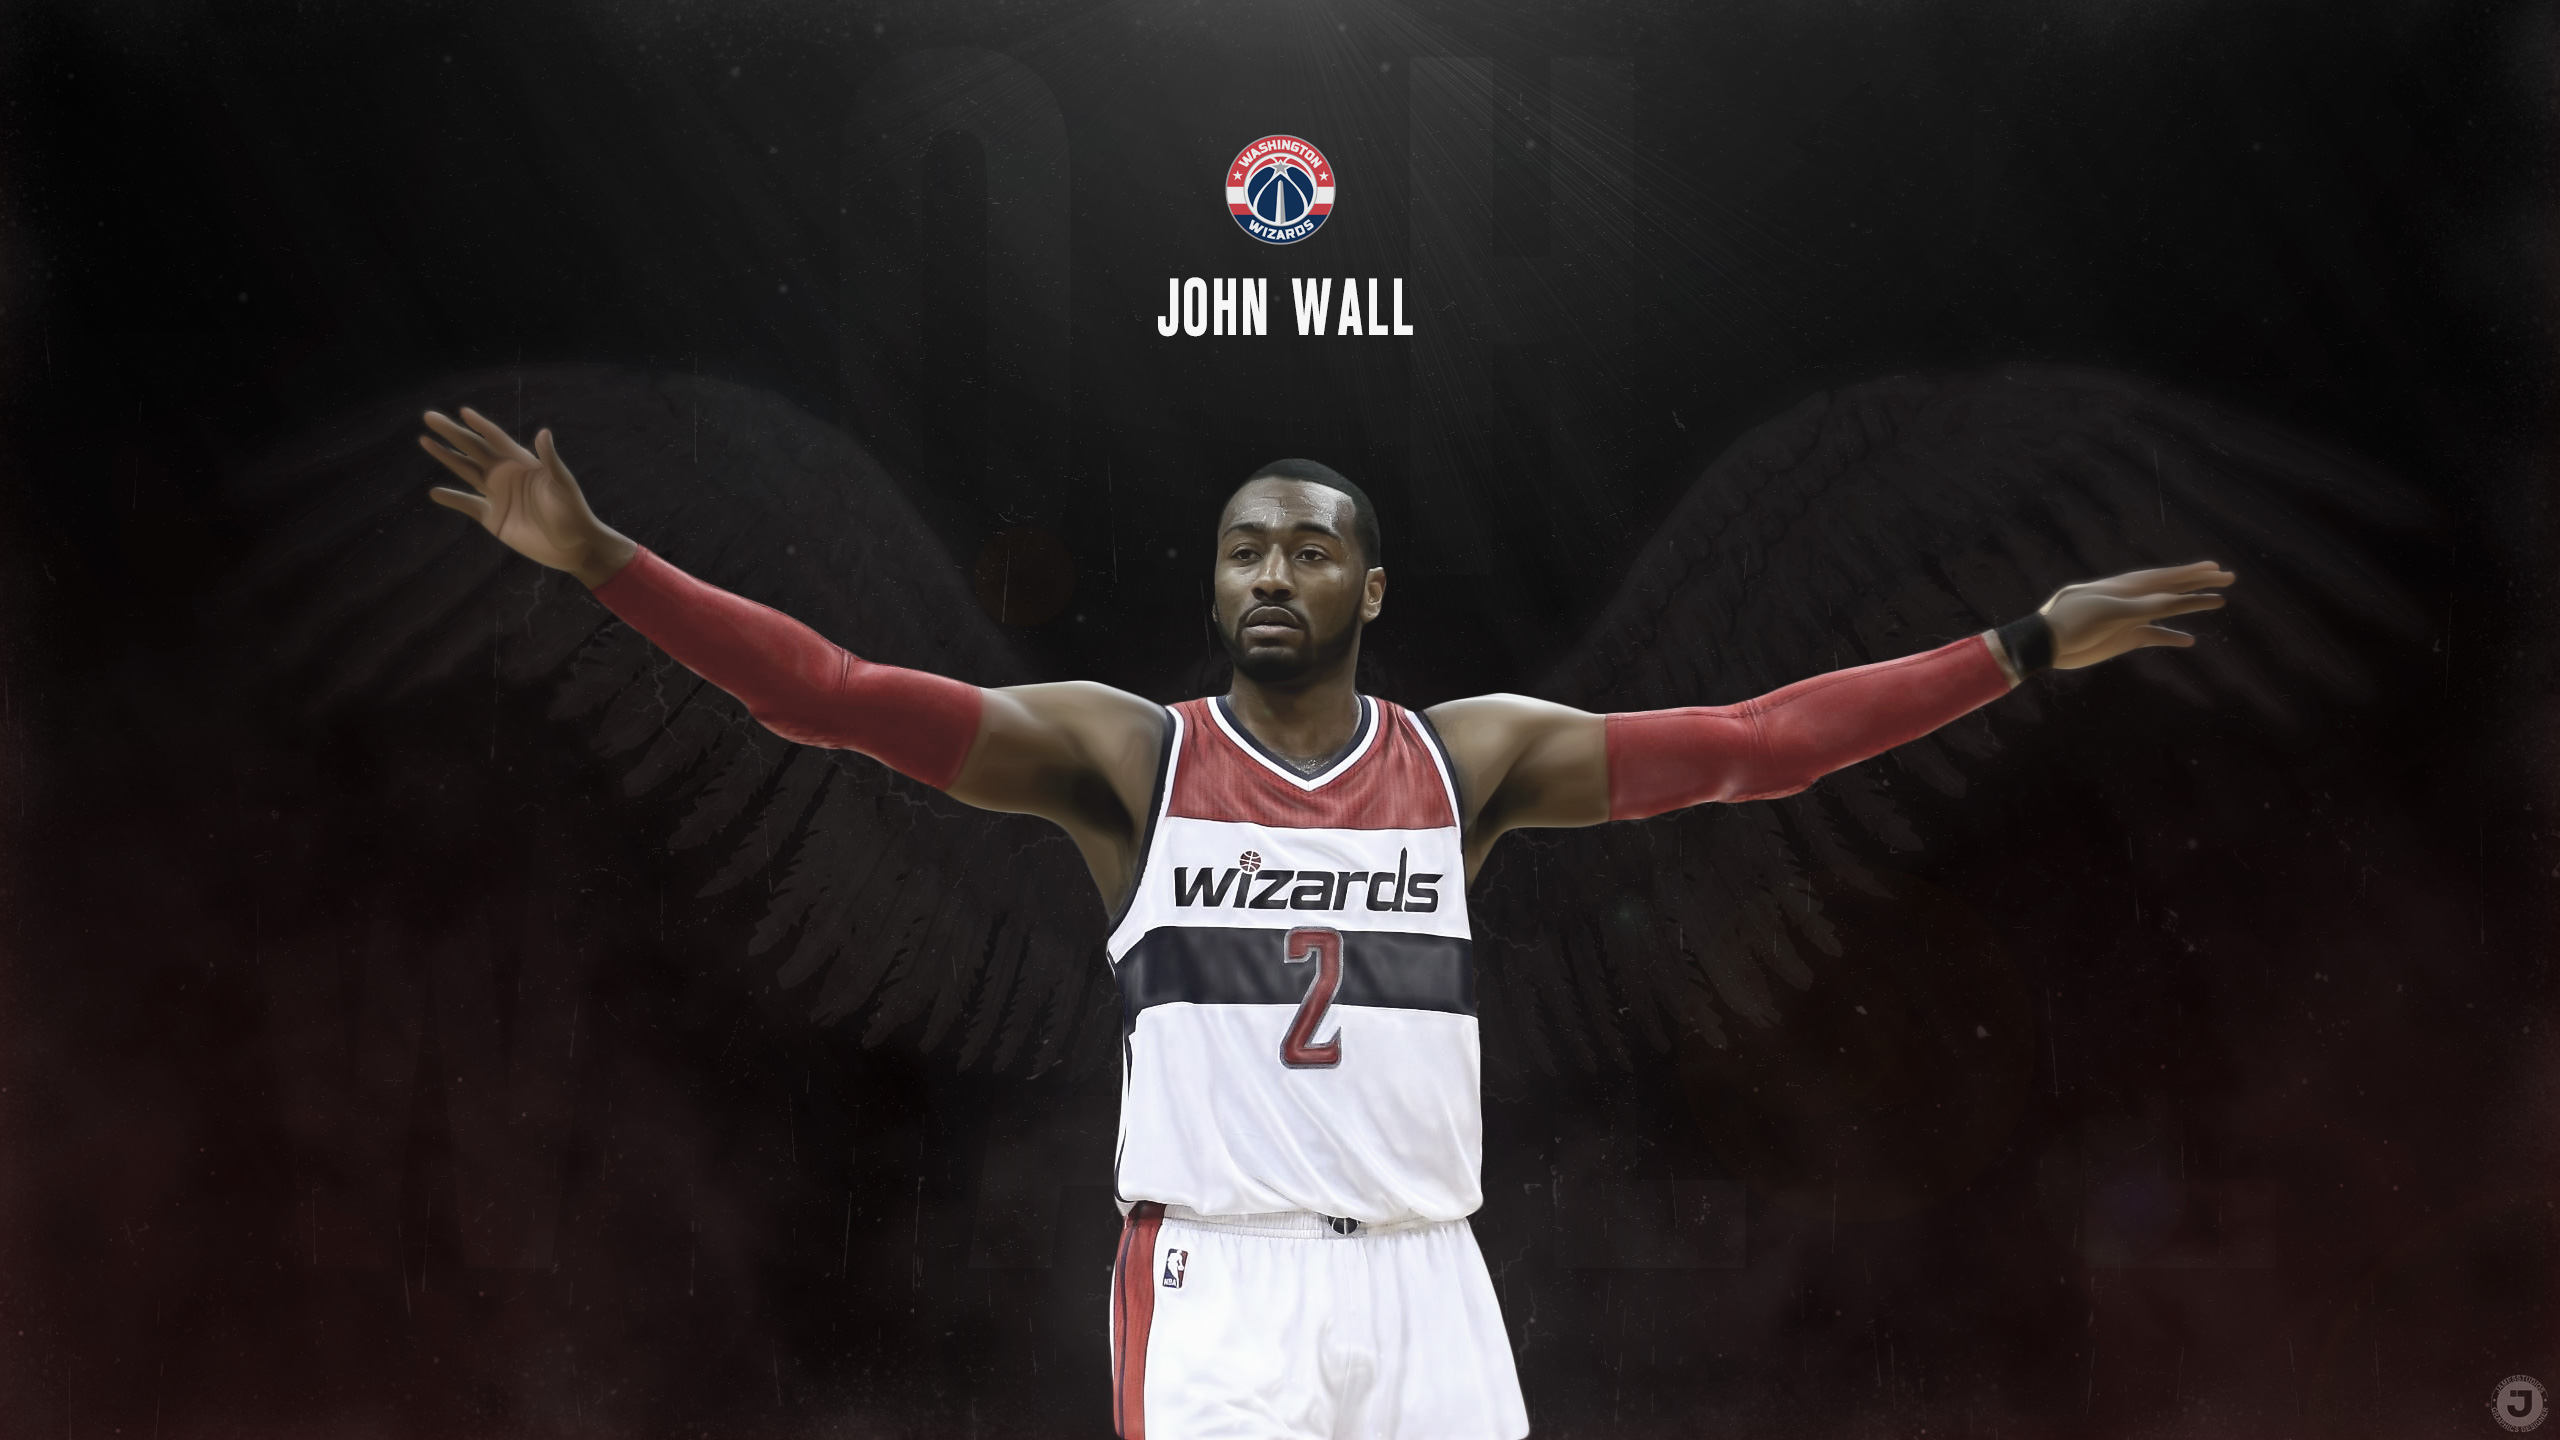 John Wall Wallpaper